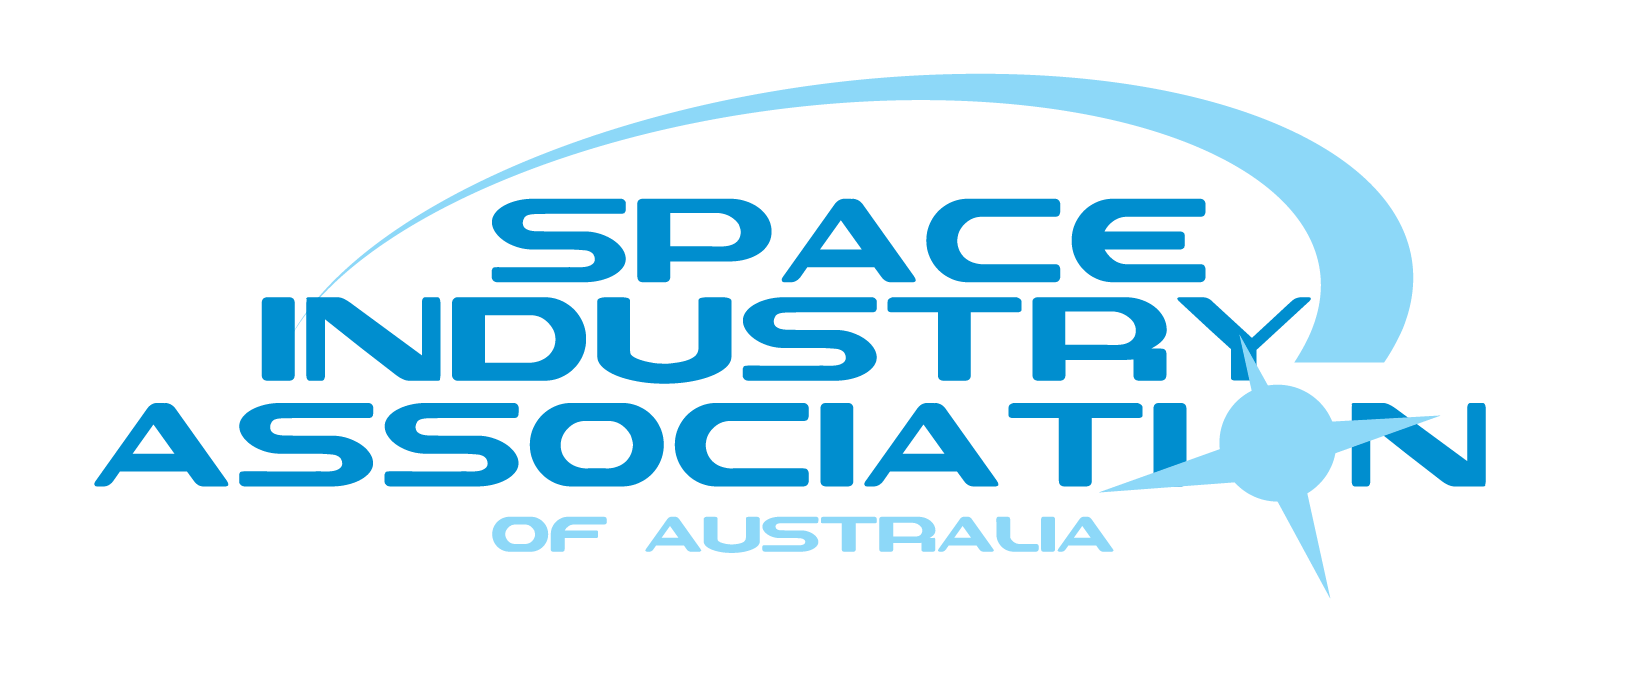 Space Industry Association Aus logo